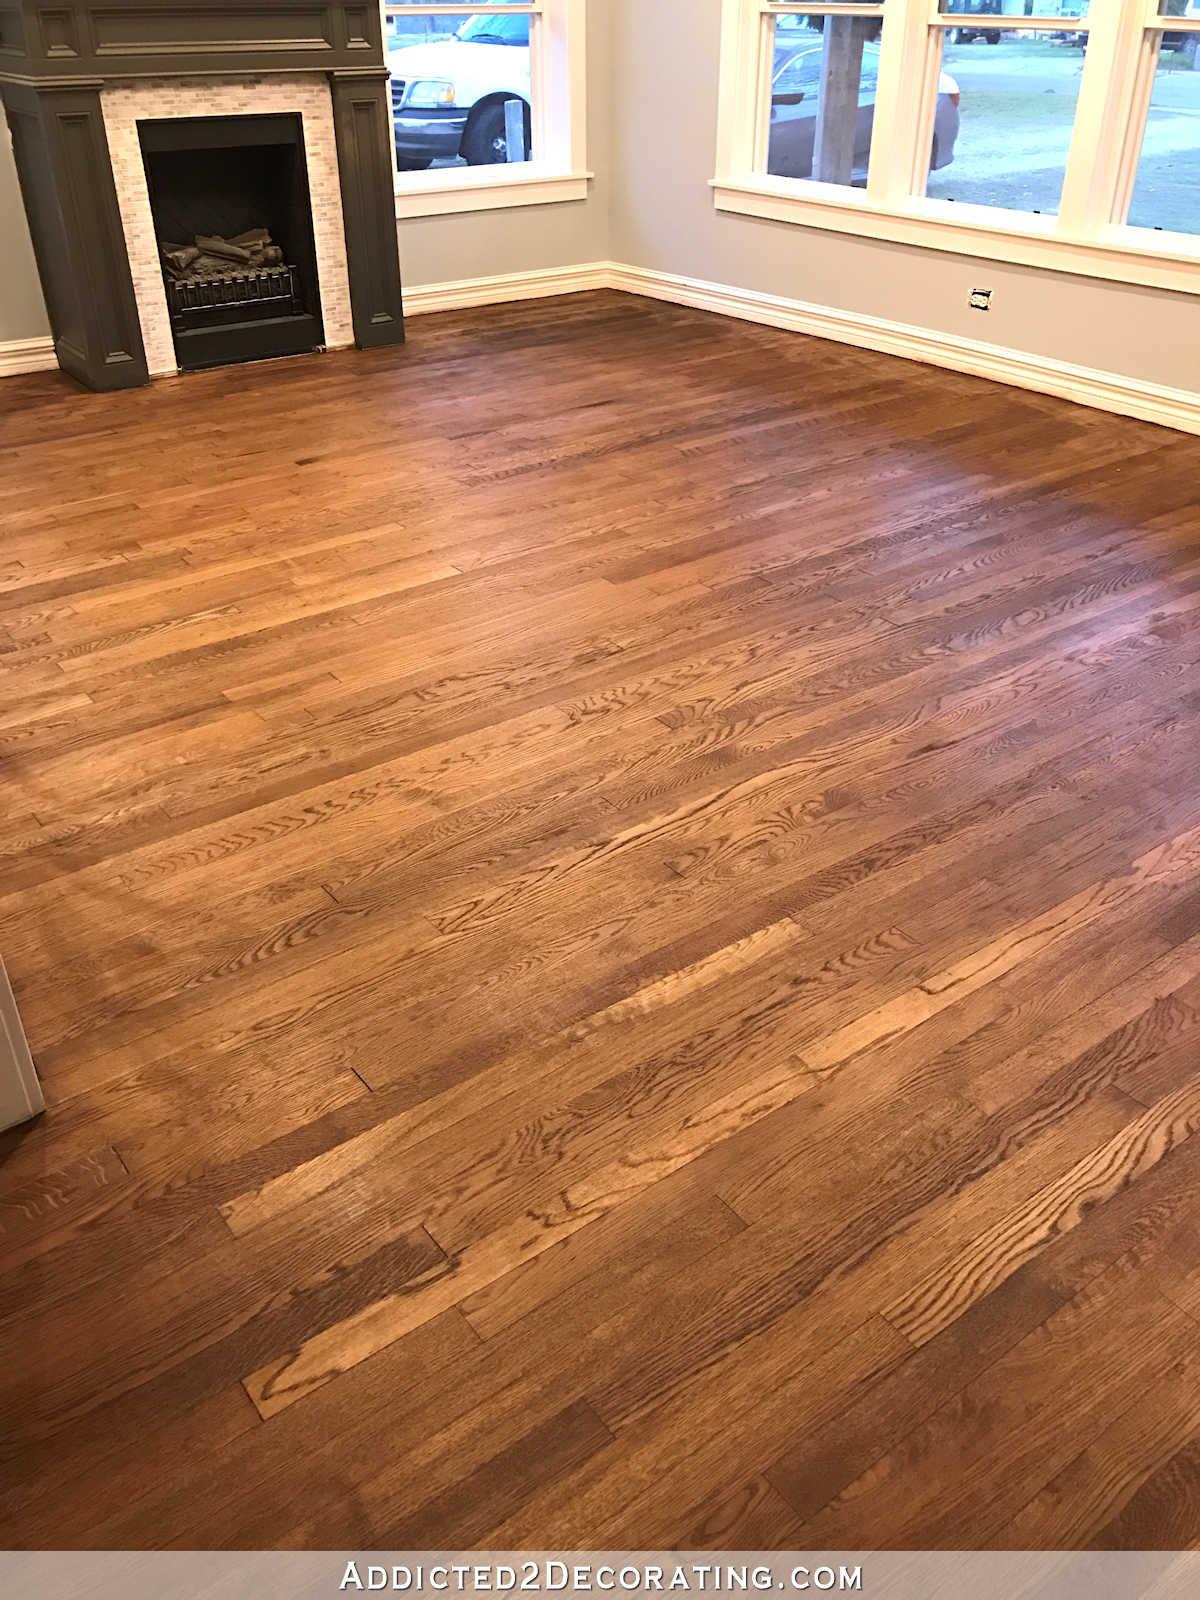 13 Awesome Types Of Hardwood Floor Finishes 2021 free download types of hardwood floor finishes of adventures in staining my red oak hardwood floors products process within staining red oak hardwood floors 8a living room and entryway